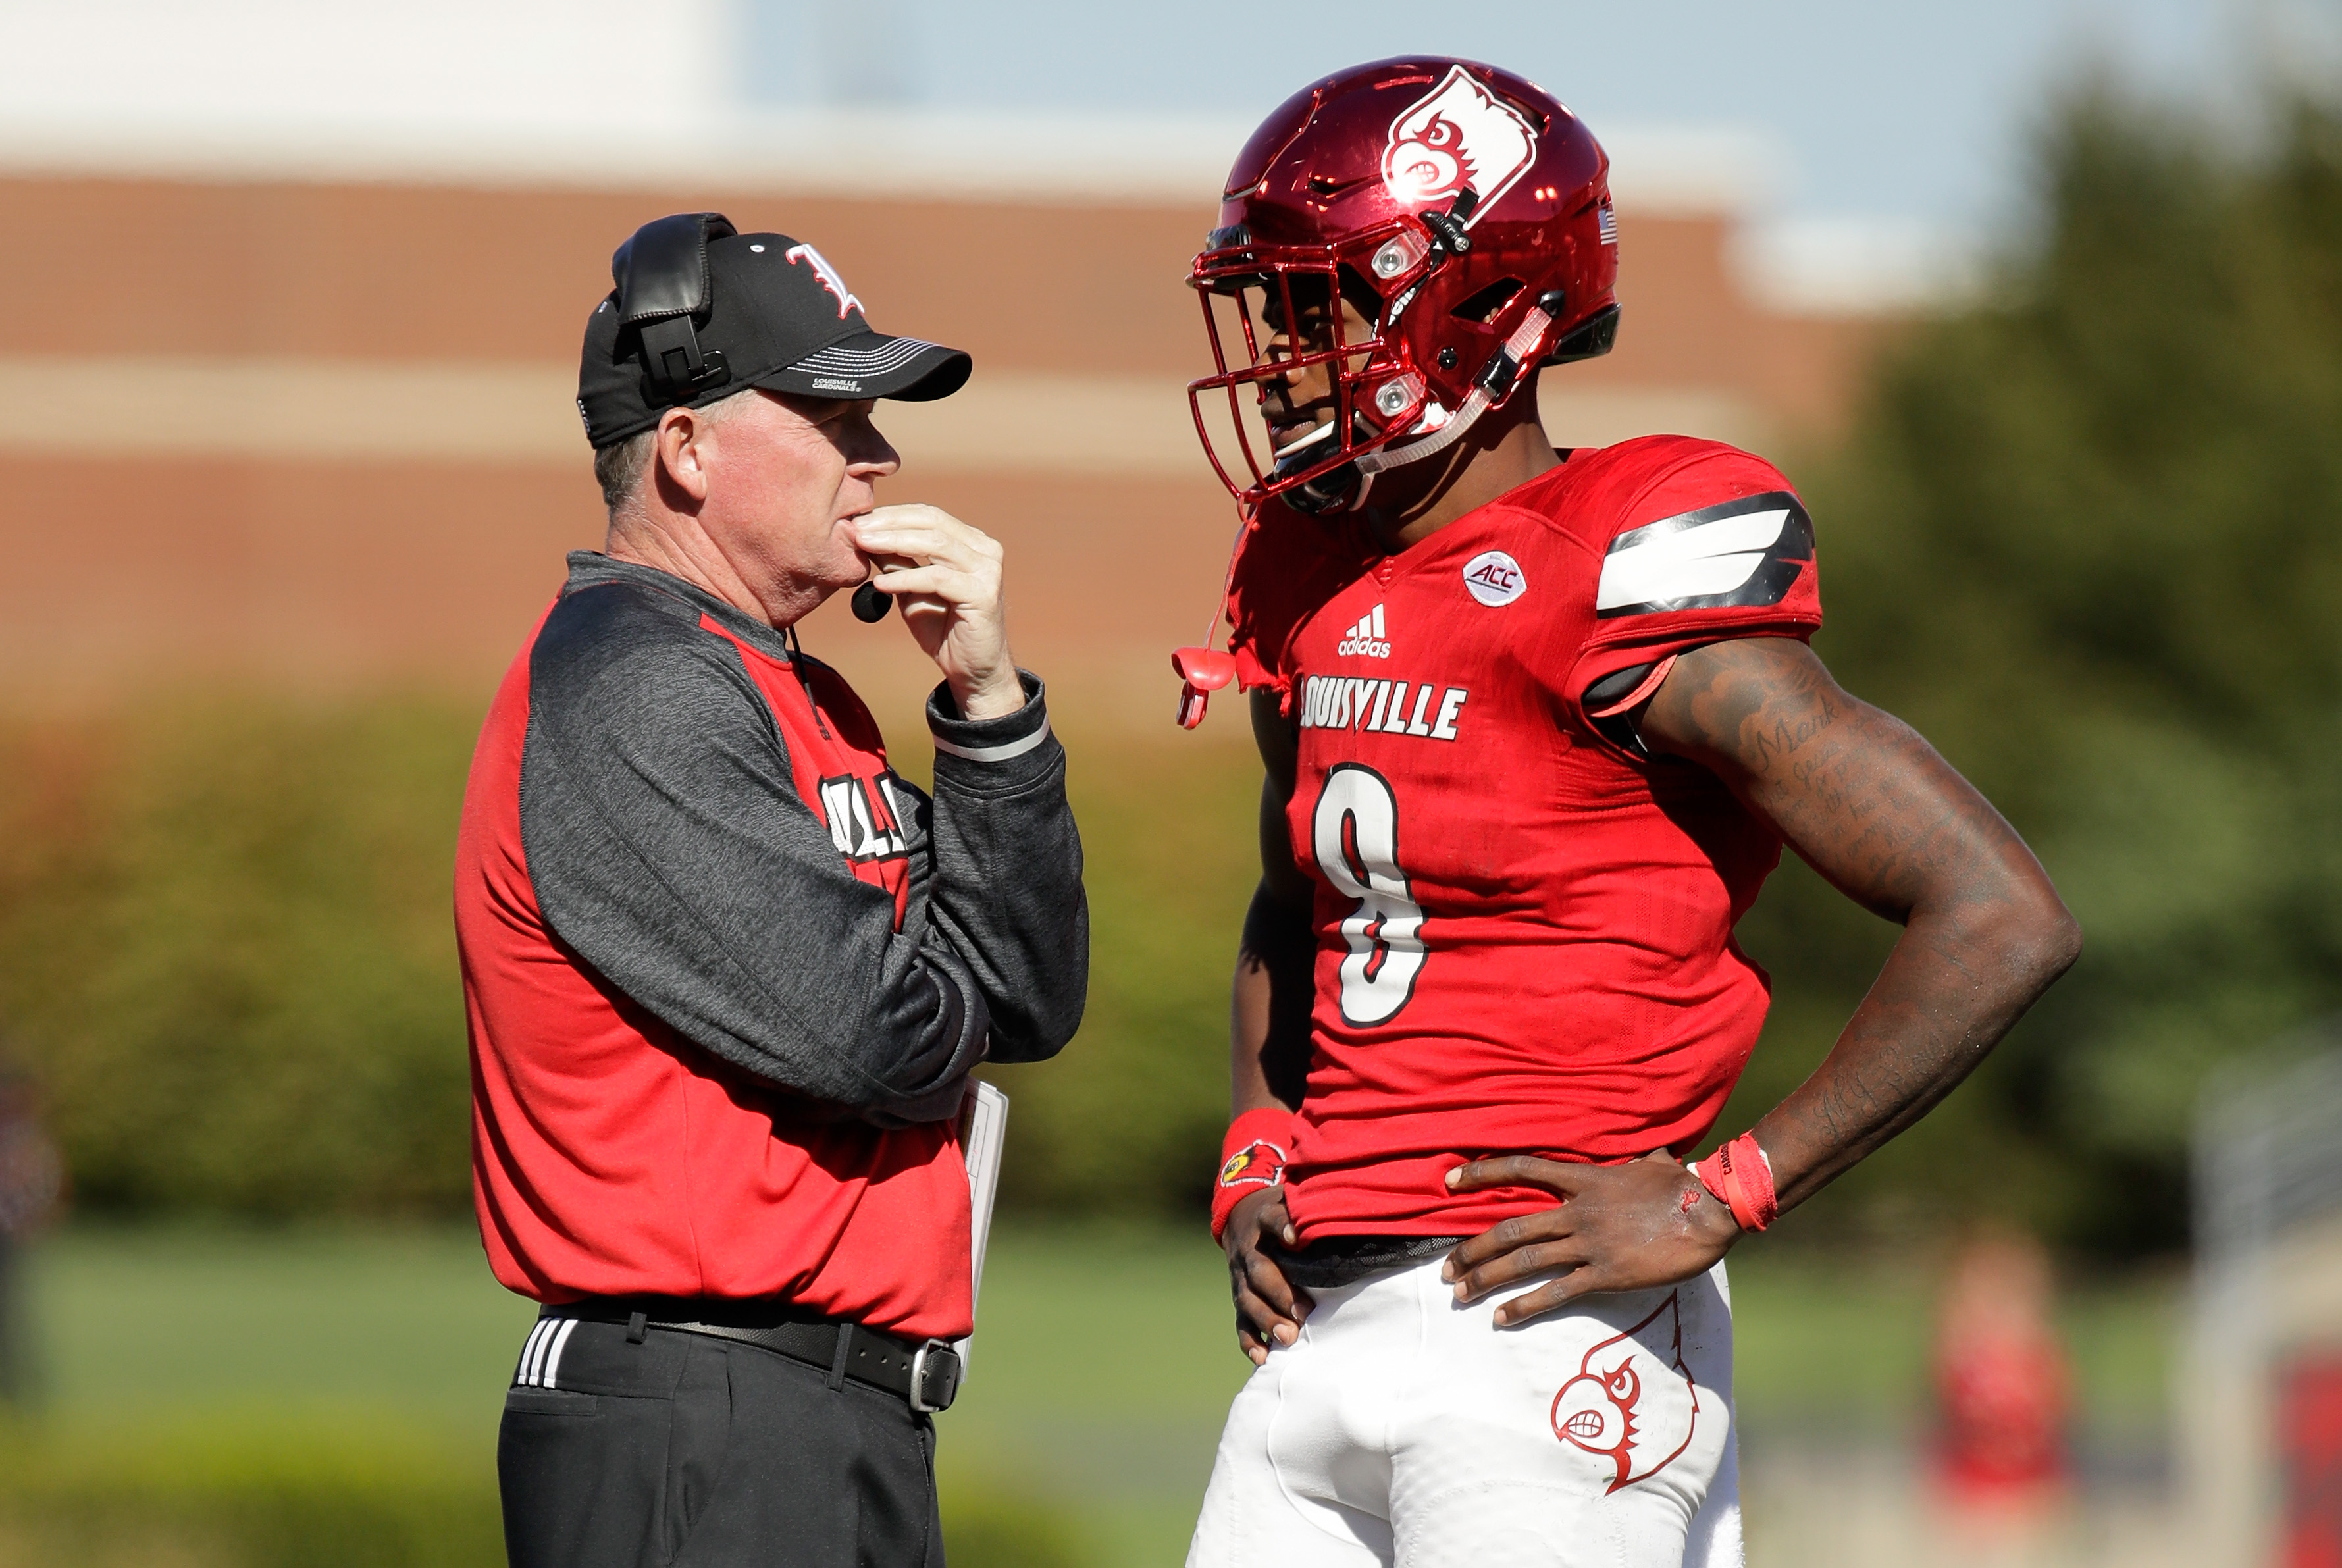 Louisville Football: 2017 season preview, predictions - Page 2